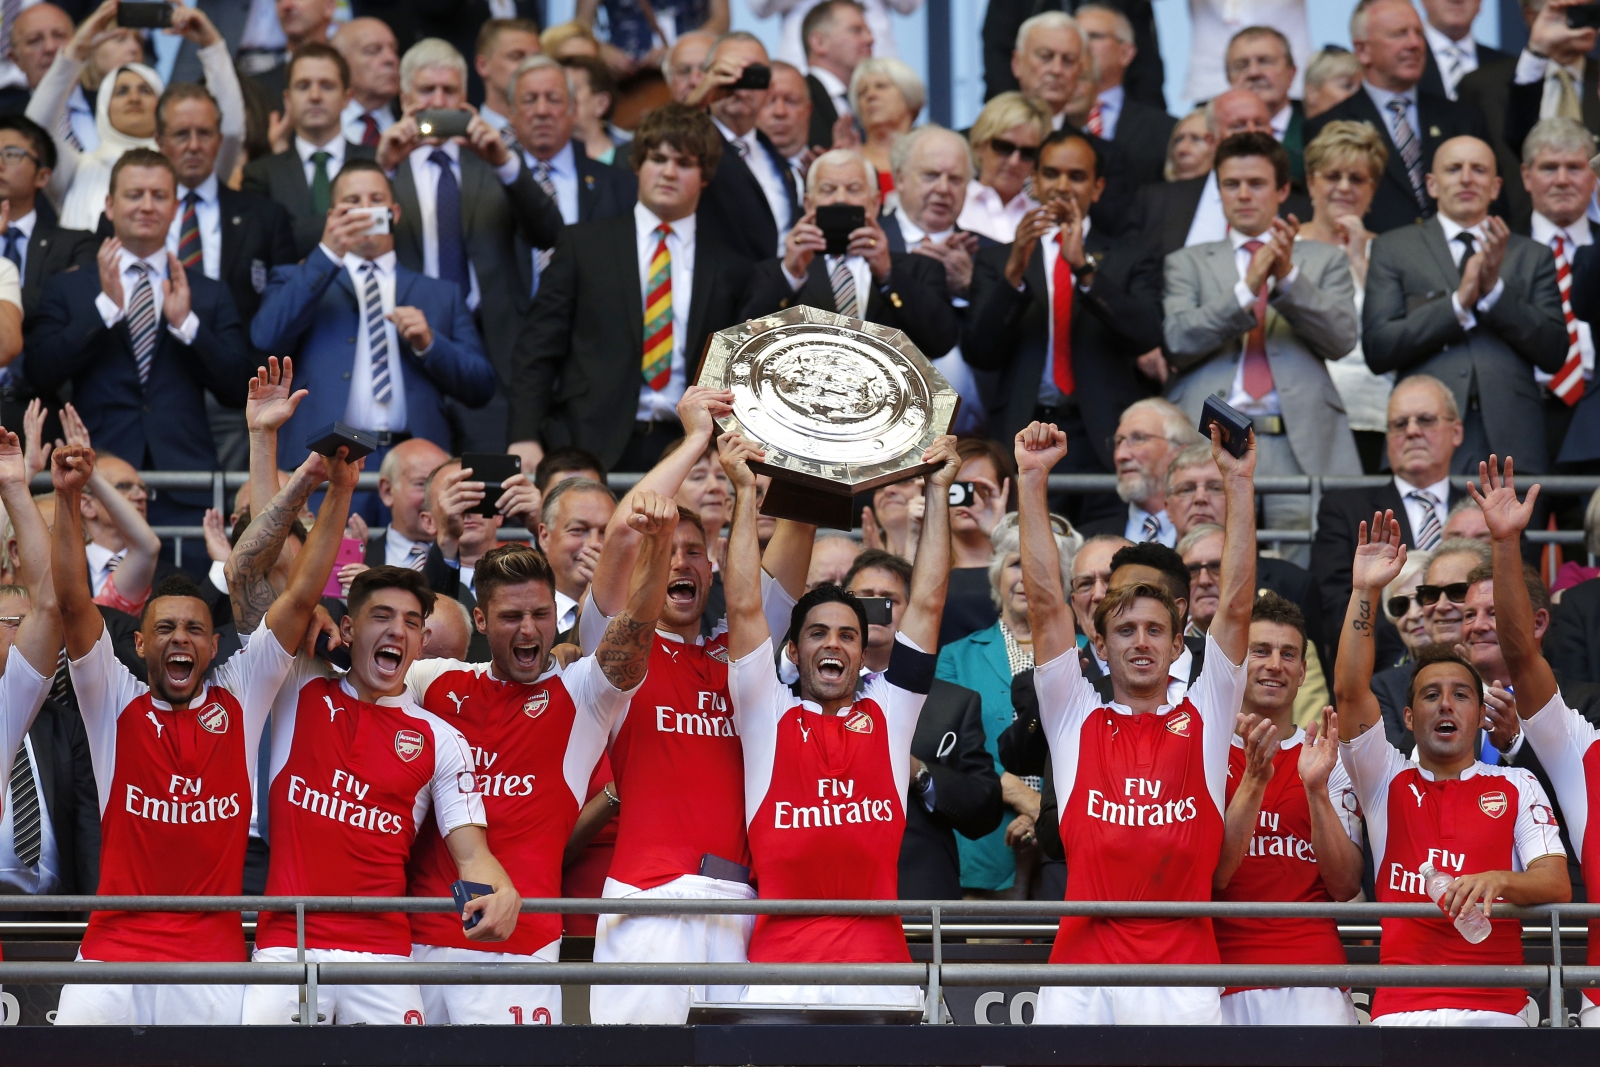 Arsenal community shield